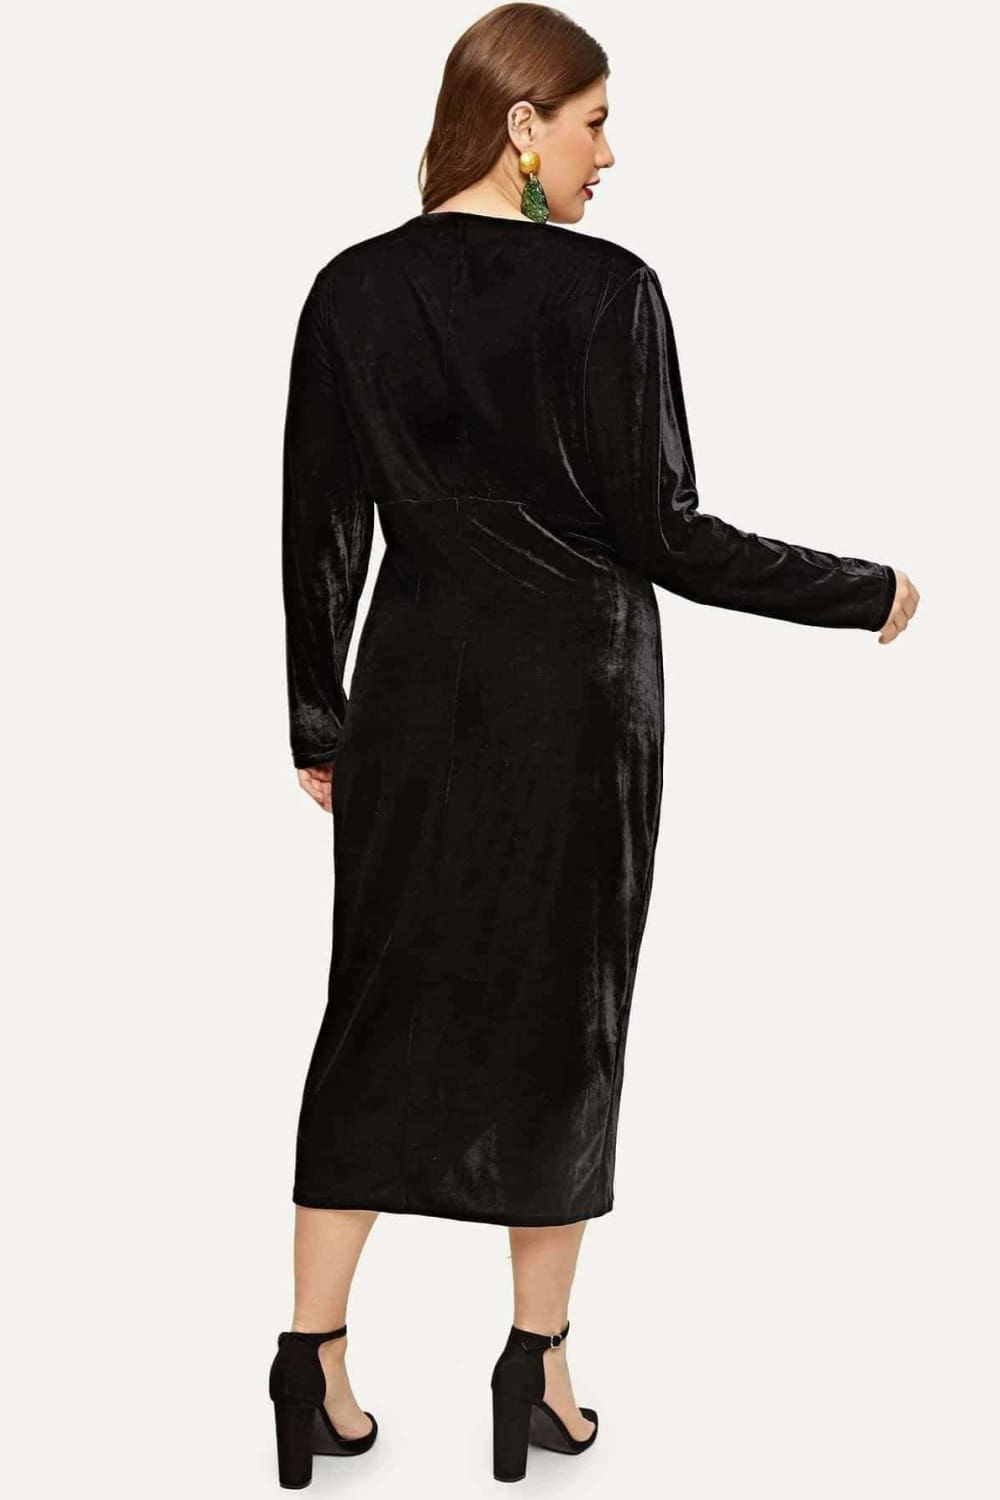 Plus Amour Black Velvet Wrap Dress - Dresses - Evan & Jane